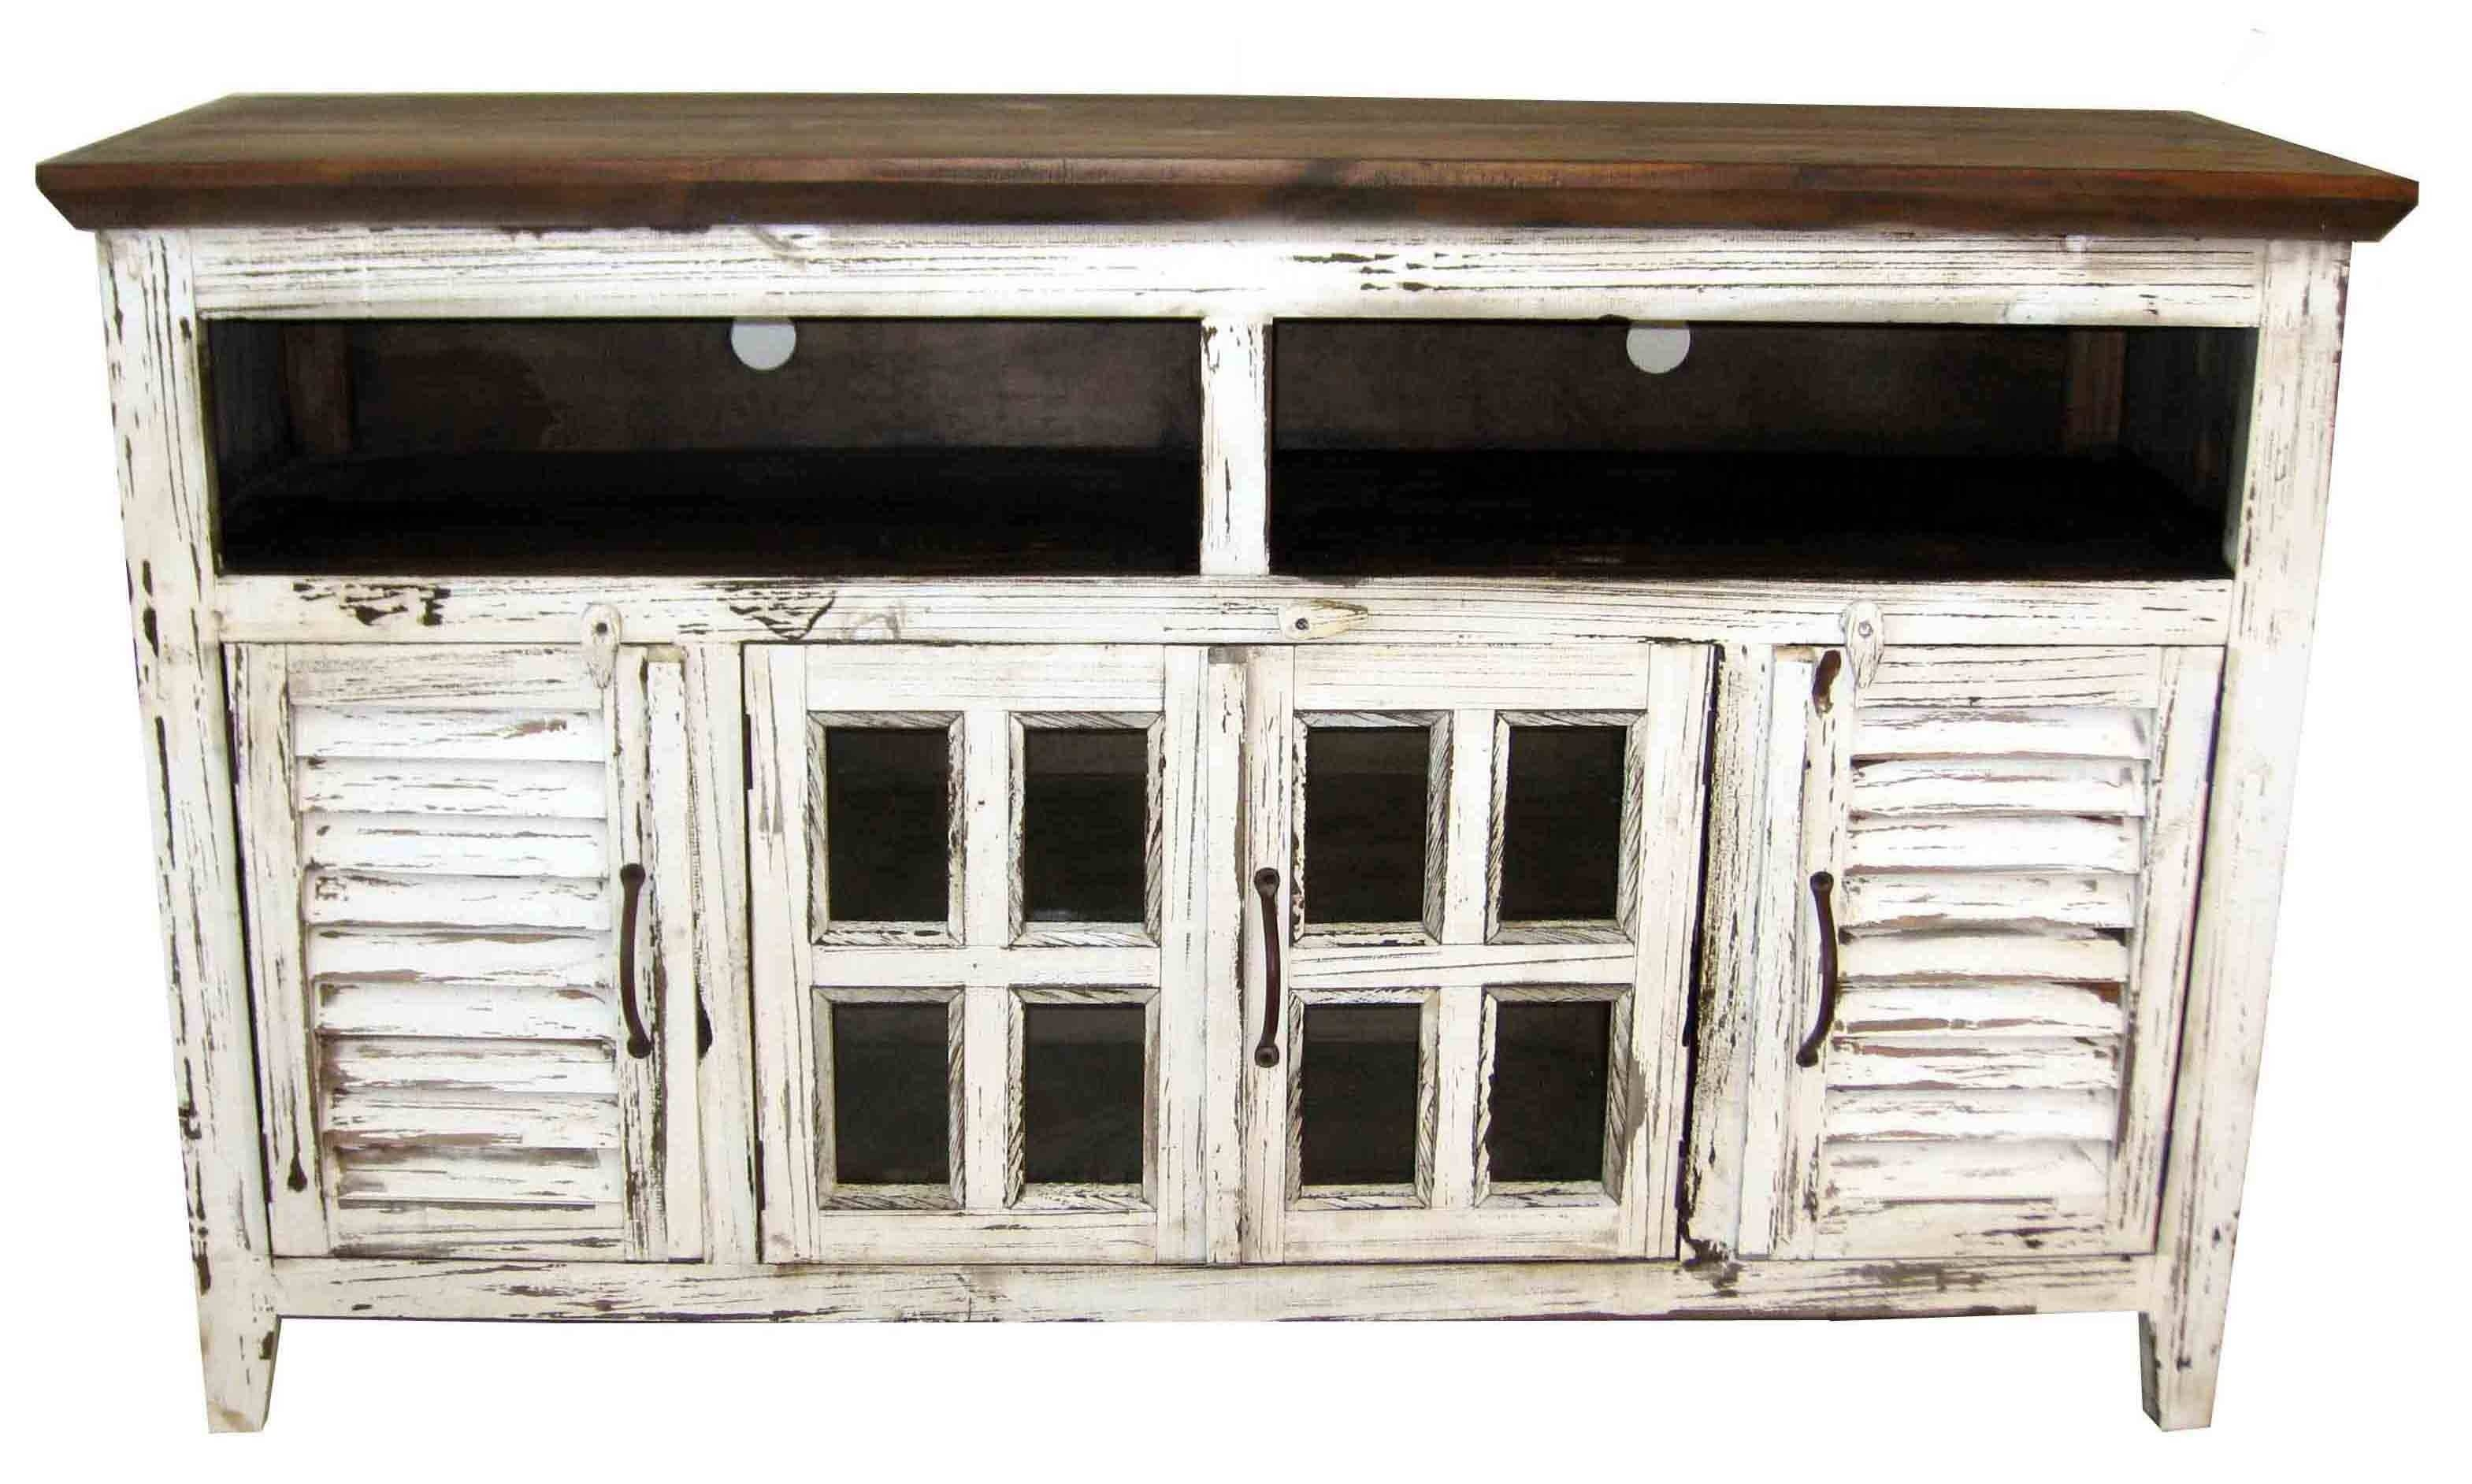 Antique White Cabana Tv Stand With Shutter Doors Texas Rustic For Rustic Tv Stands (View 3 of 15)